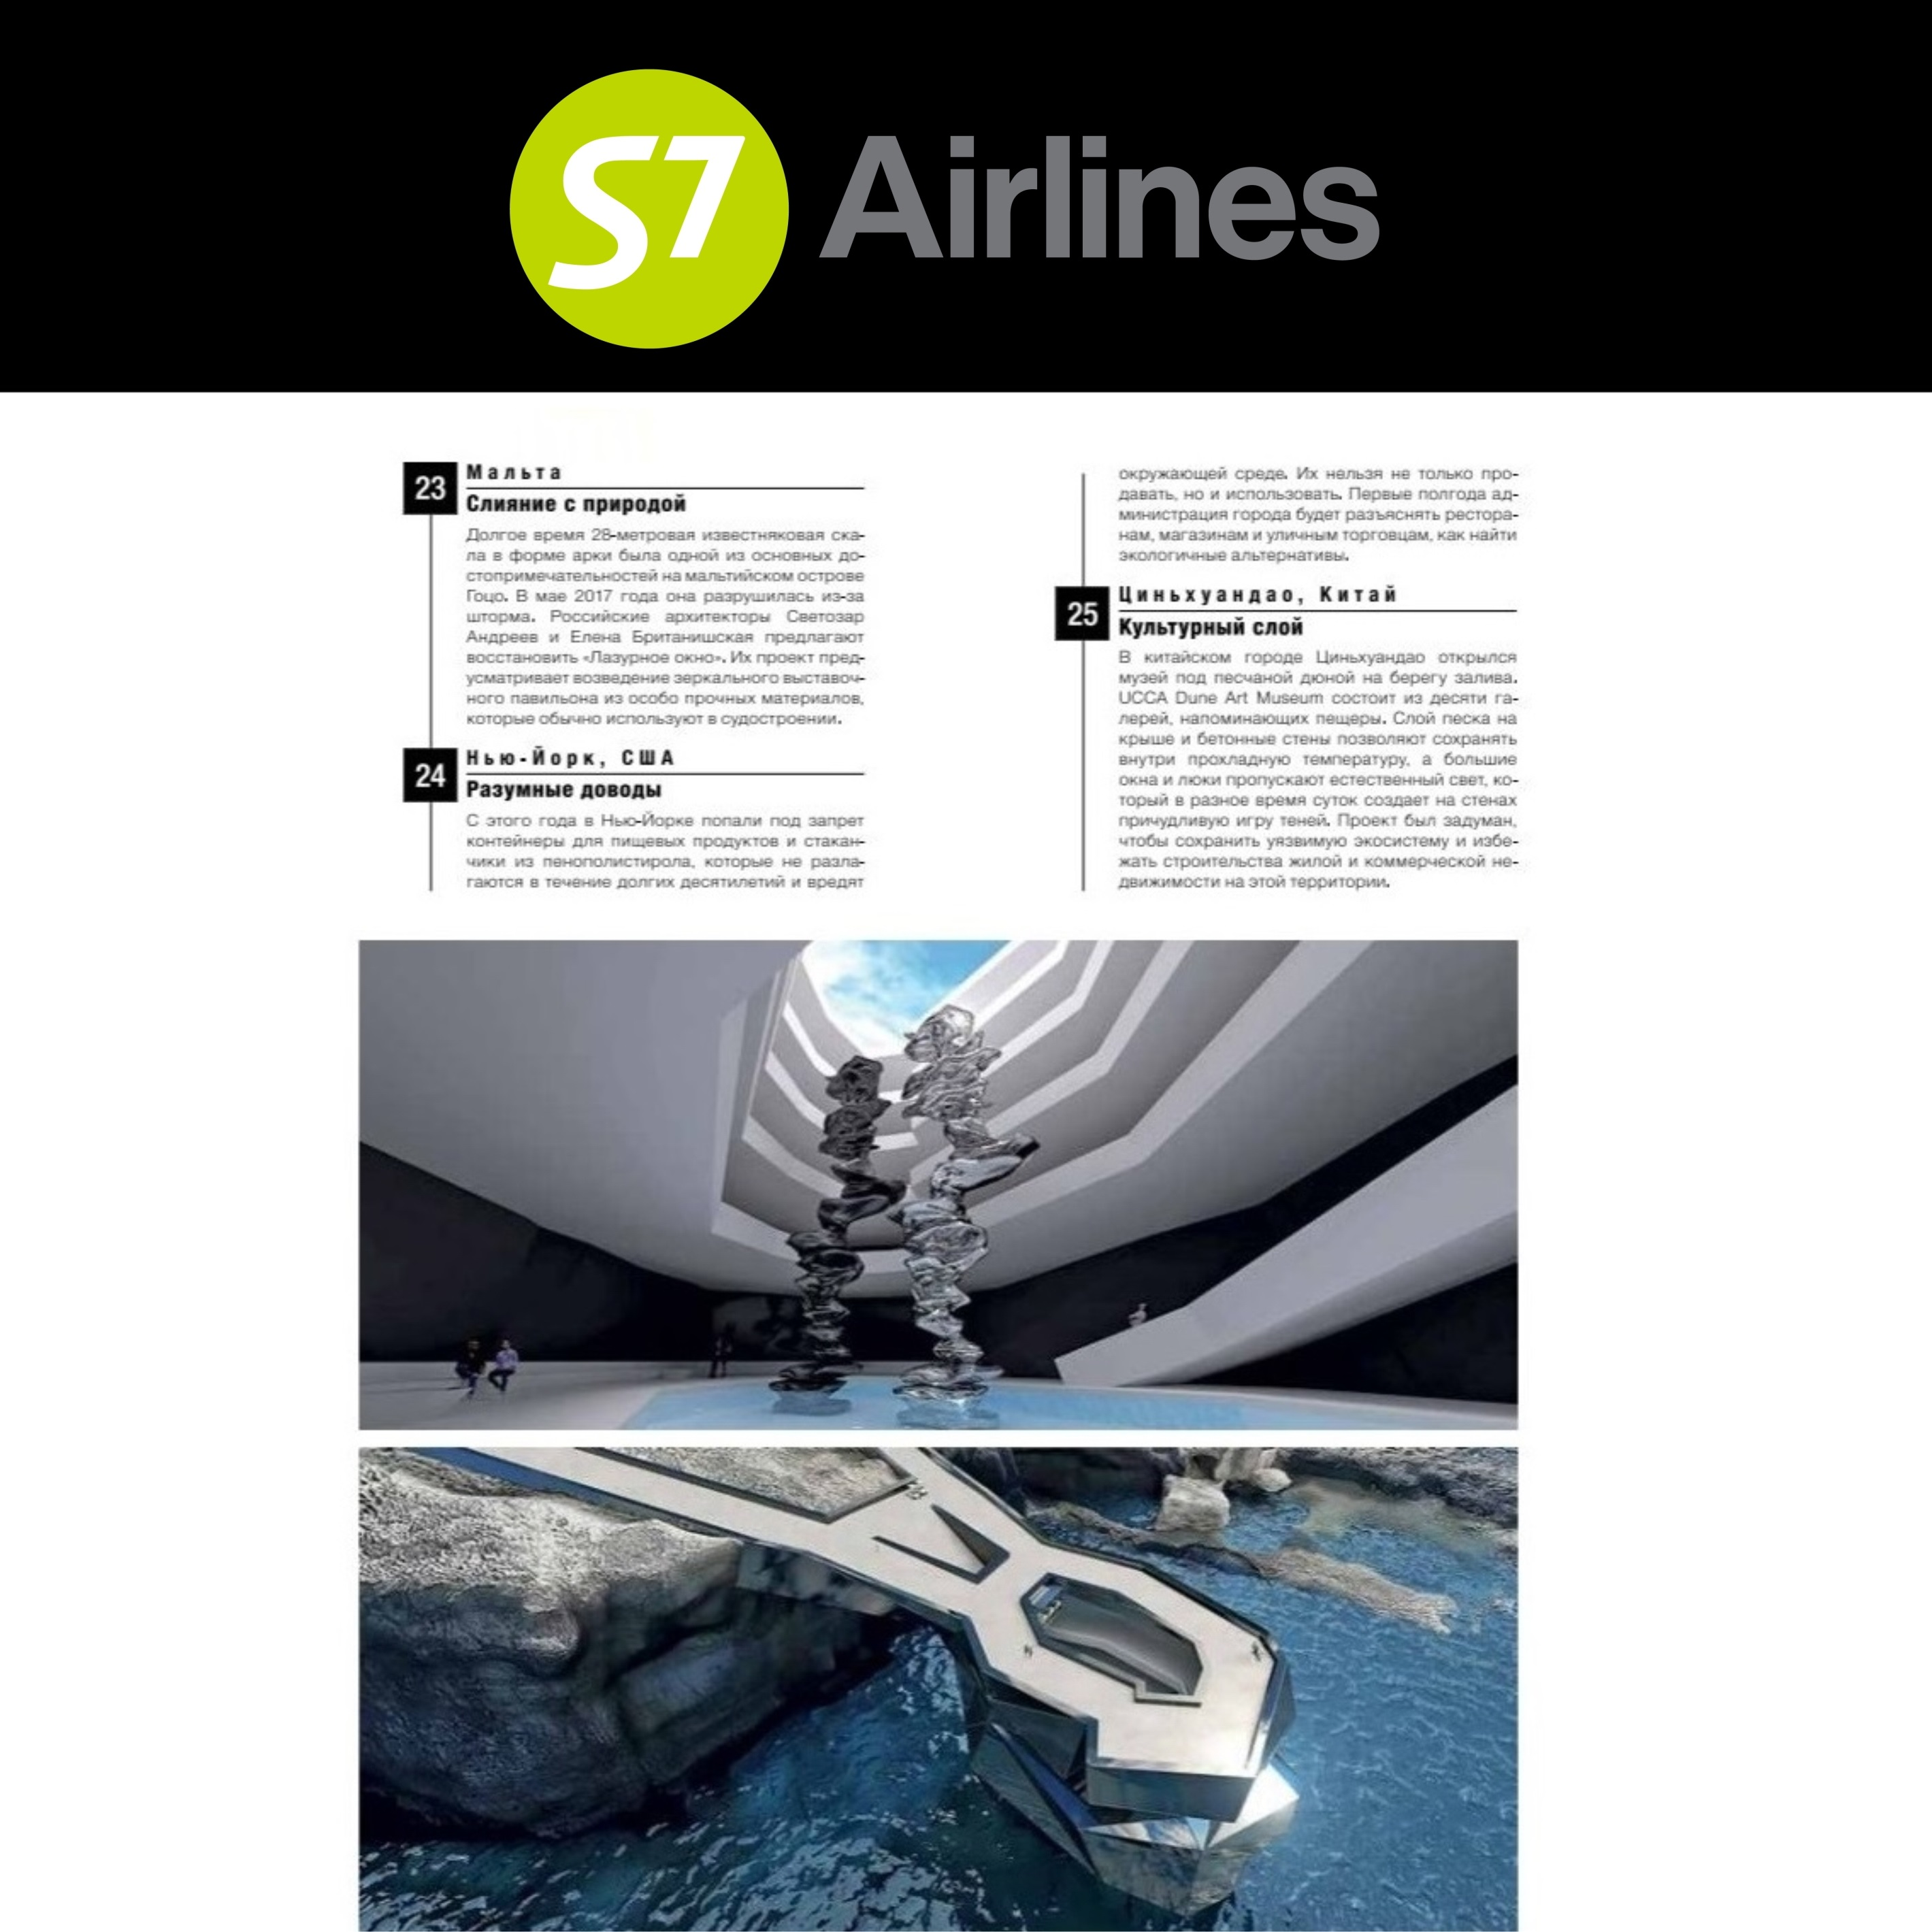 S7 Airlines Inflight Magazine